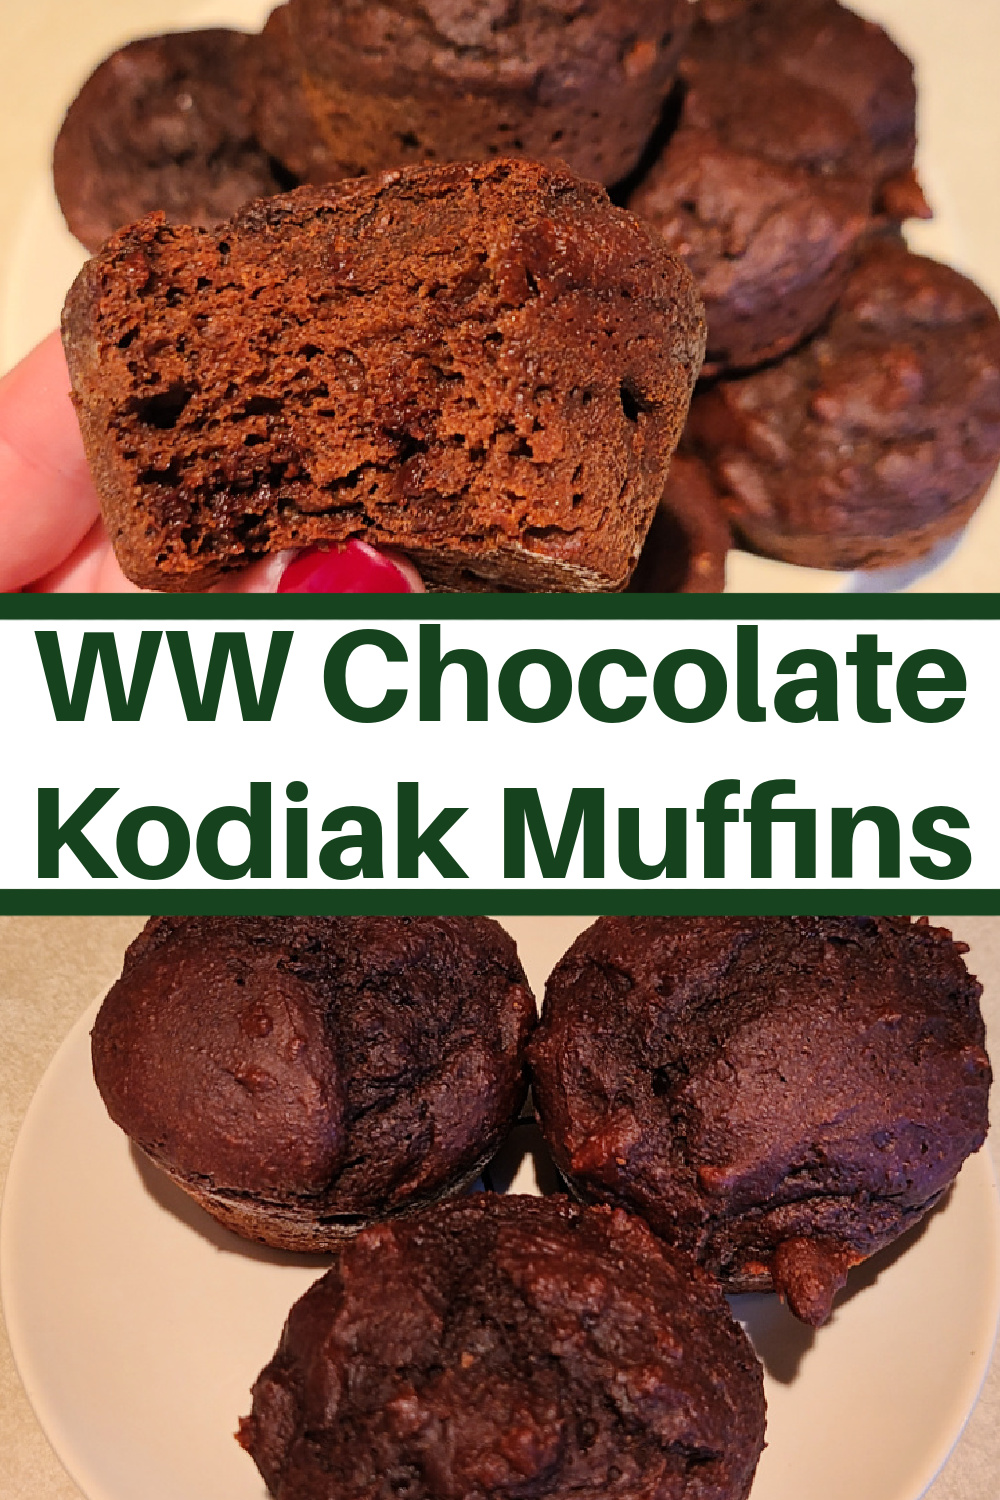 These WW Chocolate Kodiak Muffins are perfect for any of the WW Smartpoint plans! They work out to 2 Smartpoints on all three of the MyWW plans, MyWW blue, MyWW Green, and MyWW Purple. Use the Kodiak Chocolate Chip power cakes and add cocoa to make these tasty treats!